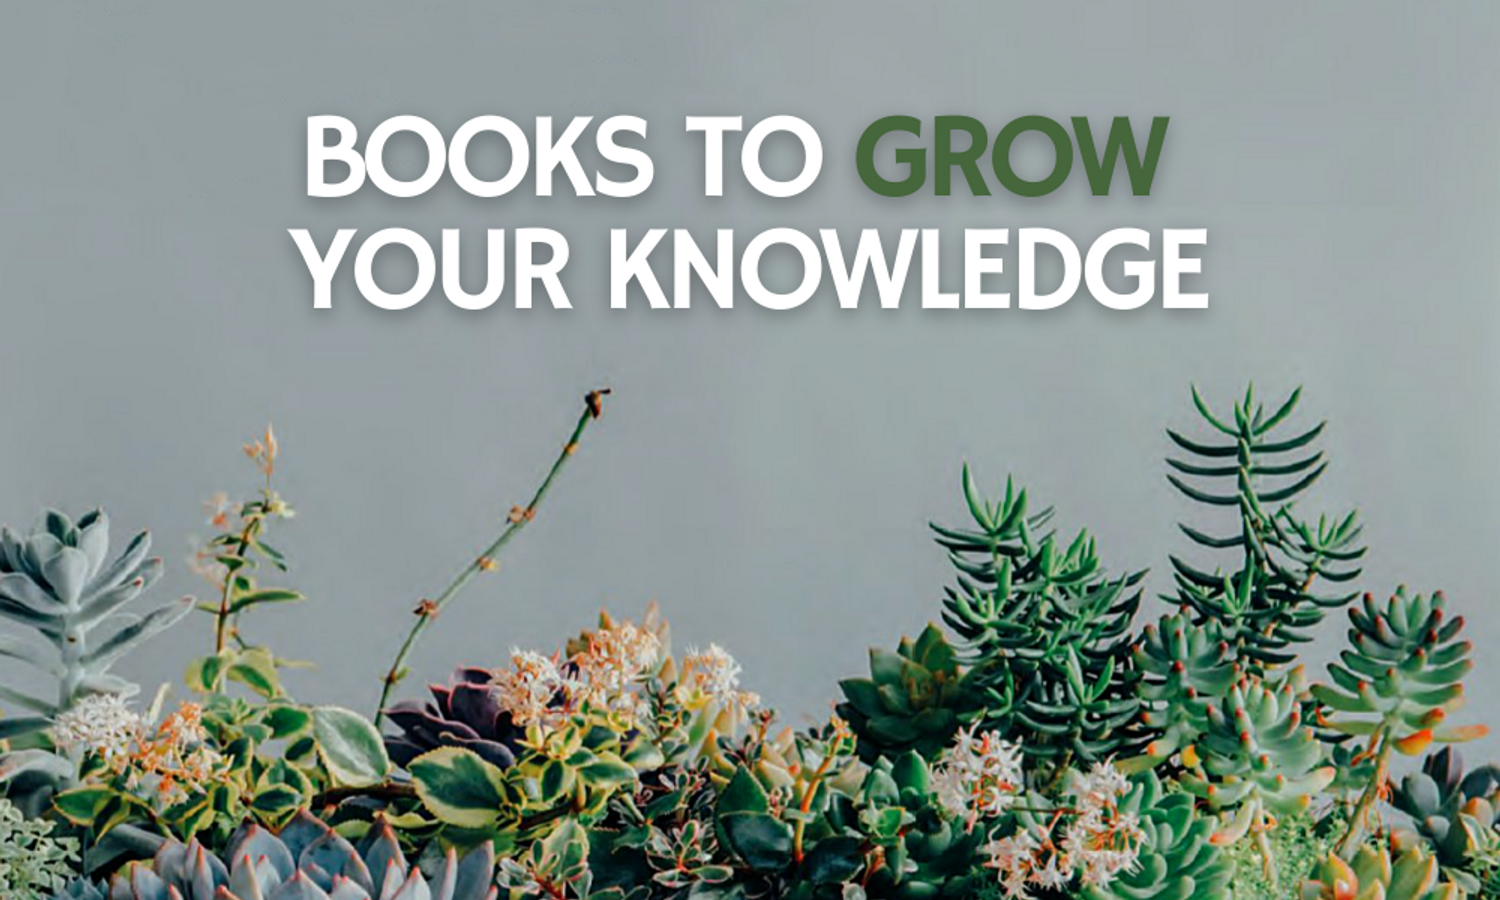 Books to Grow Your Knowledge